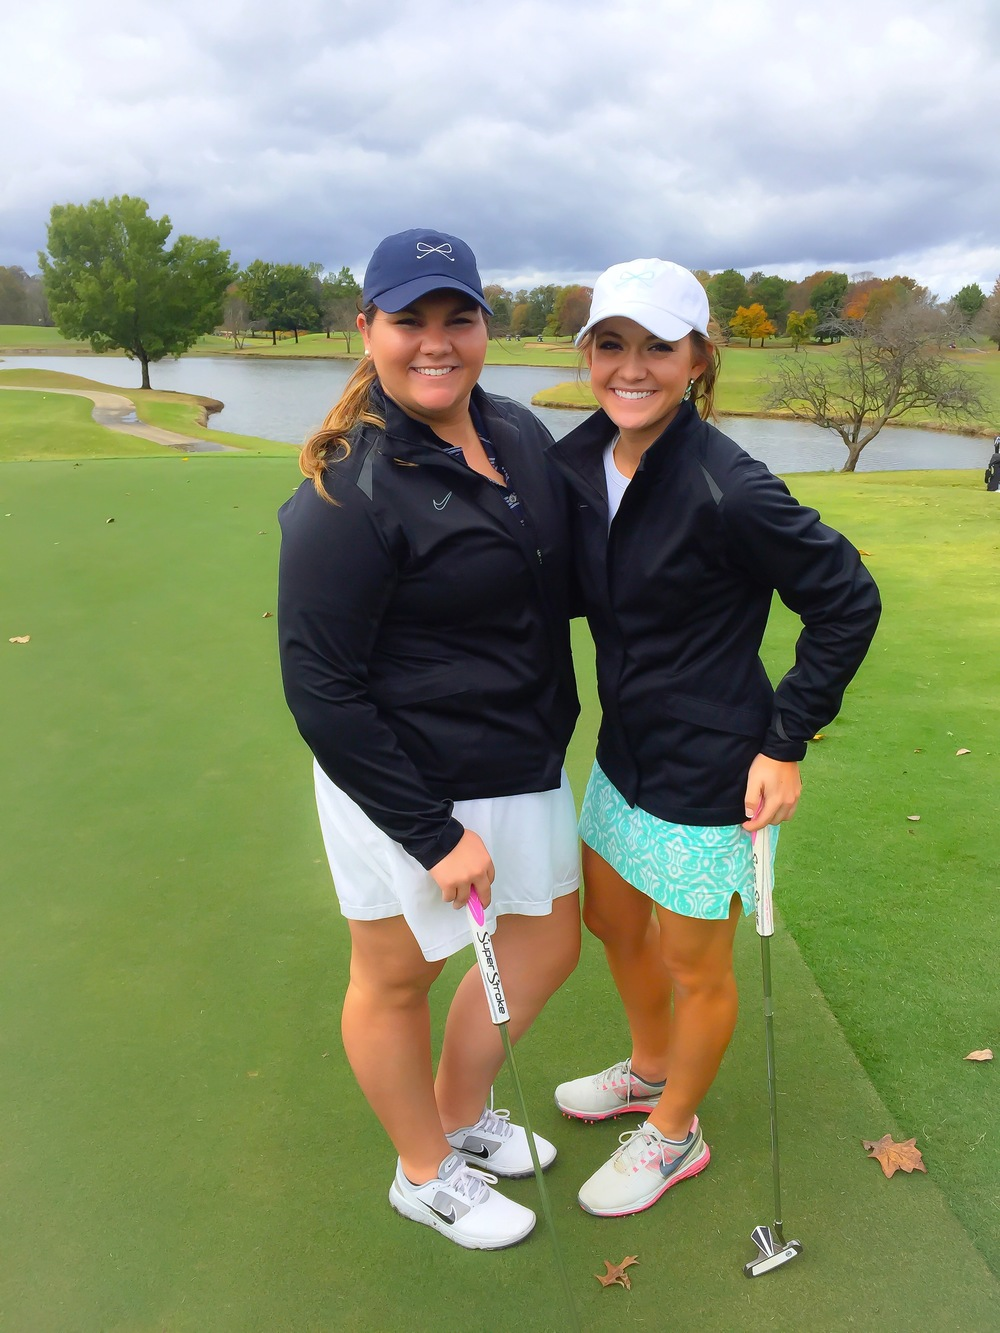 My teammate Evin and I at a scramble at The Hermitage Golf Course.